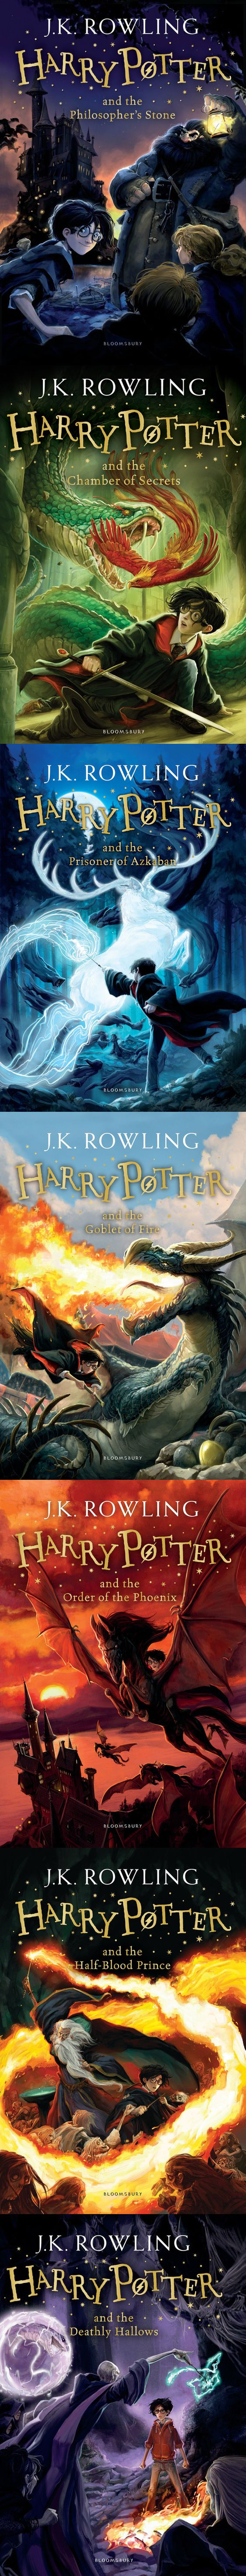 """The new """"Harry Potter"""" covers are here! And 11 yr. old harry looks no different than 17 yr. old harry! Lol"""